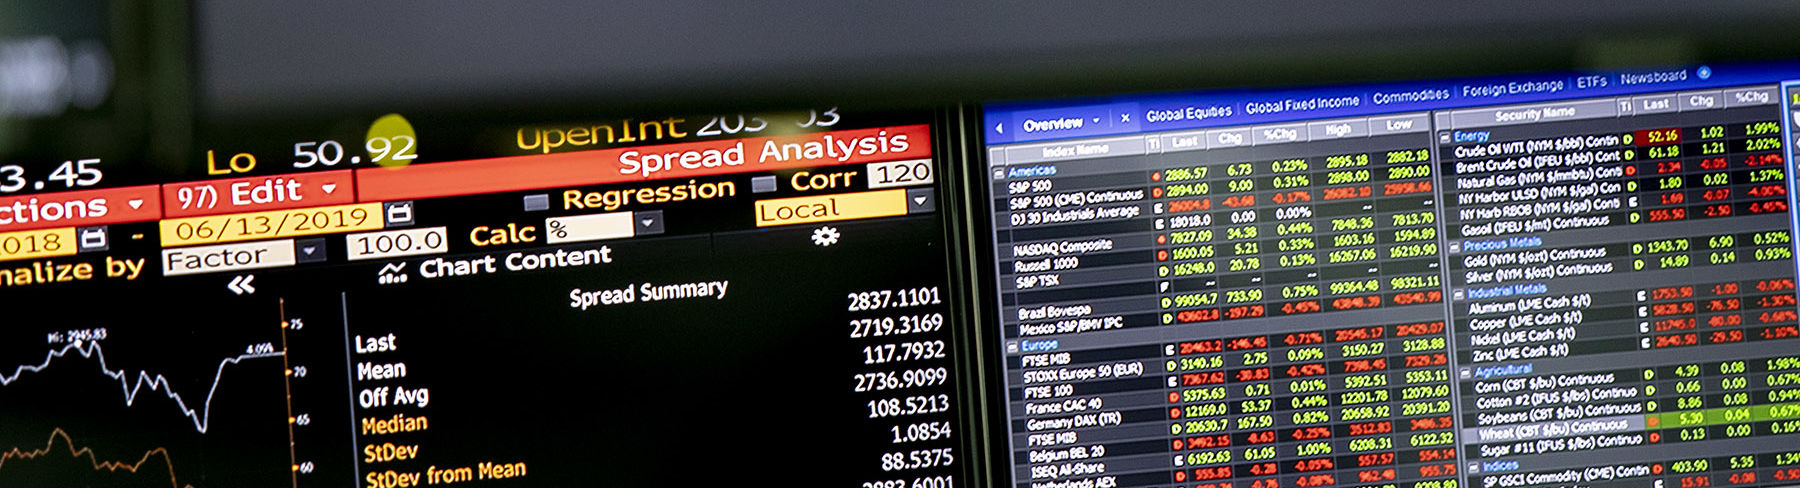 A close-up image of computer screens displaying financial information in graphs and tables